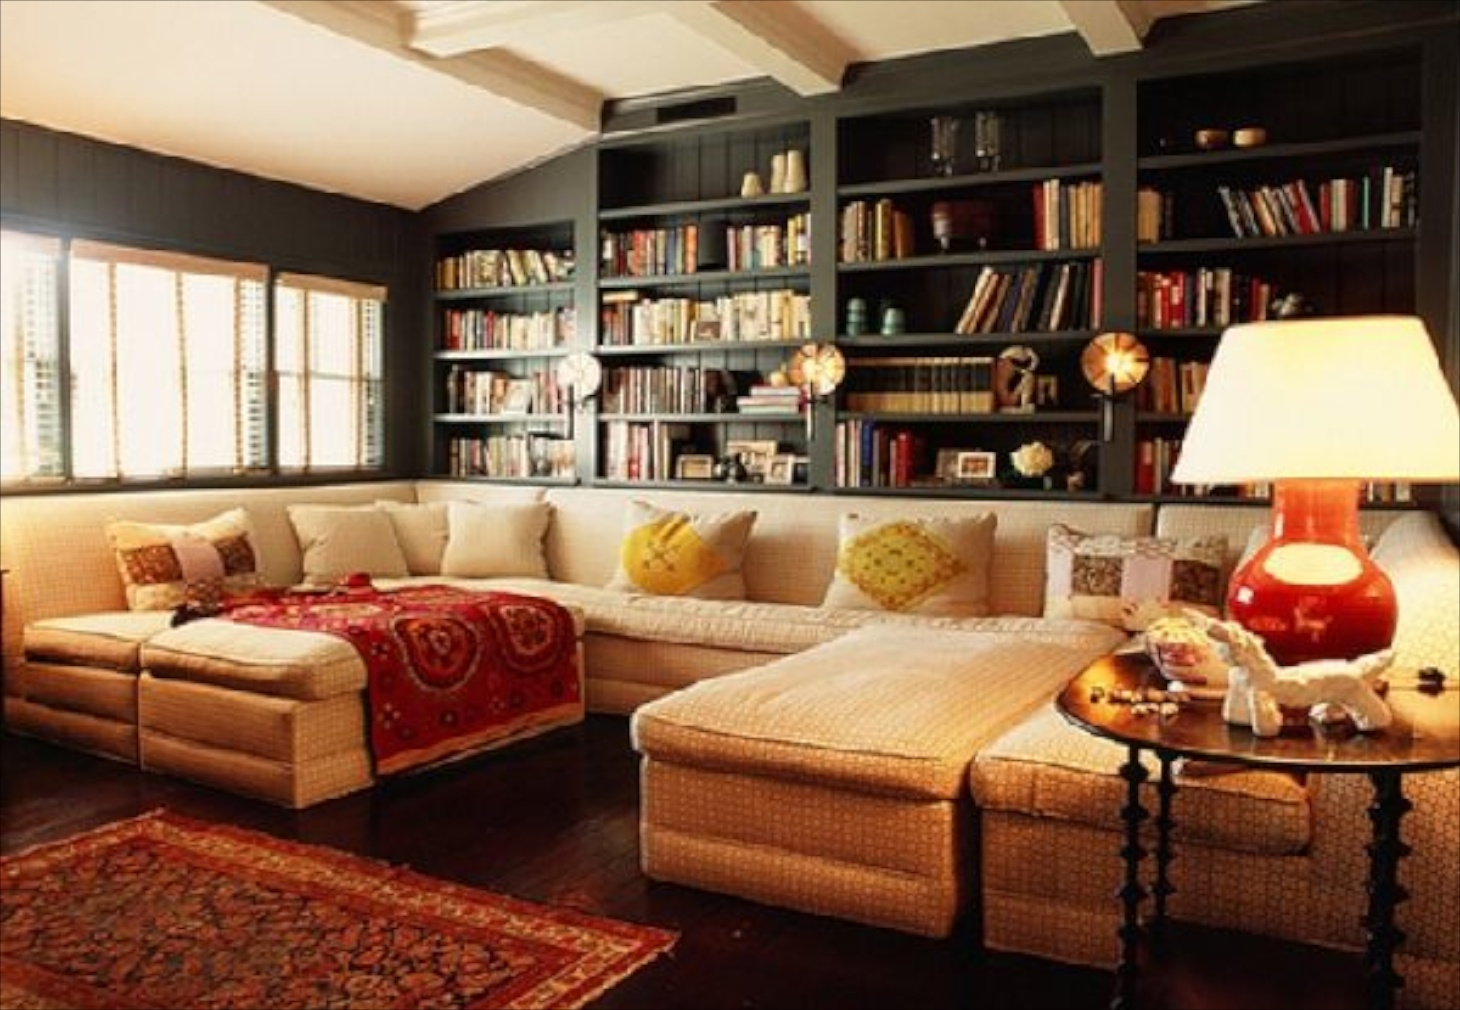 23 sofas and bookcase ideas in cozy living room design - Cosy living room designs ...